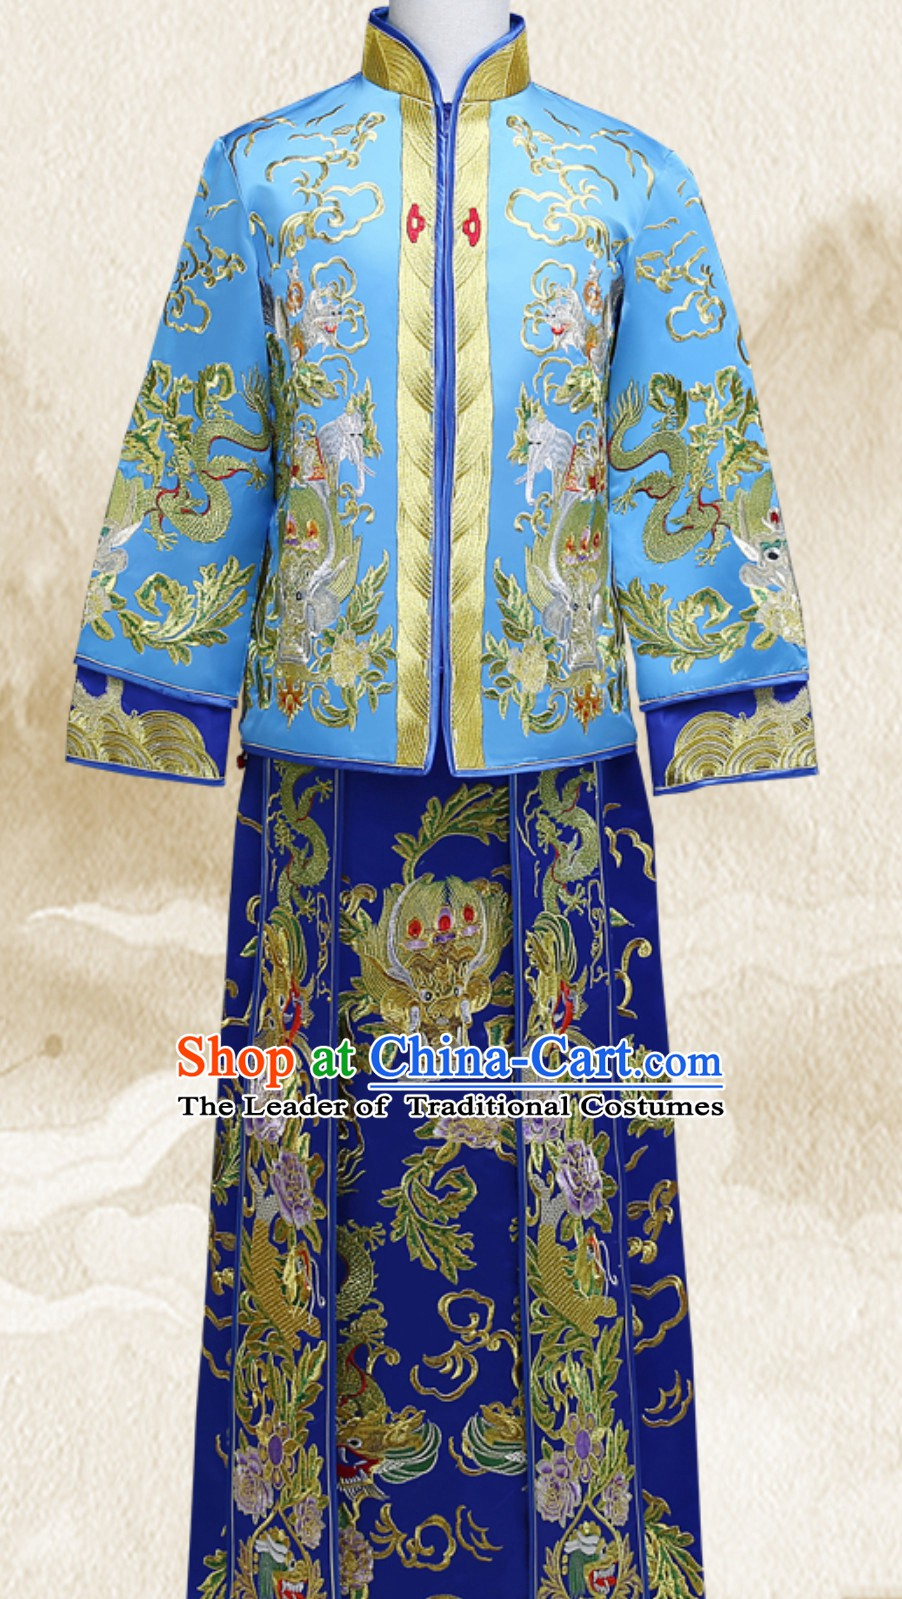 Embroidered Bridegroom Chinese Traditional Wedding Dresses Ceremonial Clothing China Wedding Dress for Men